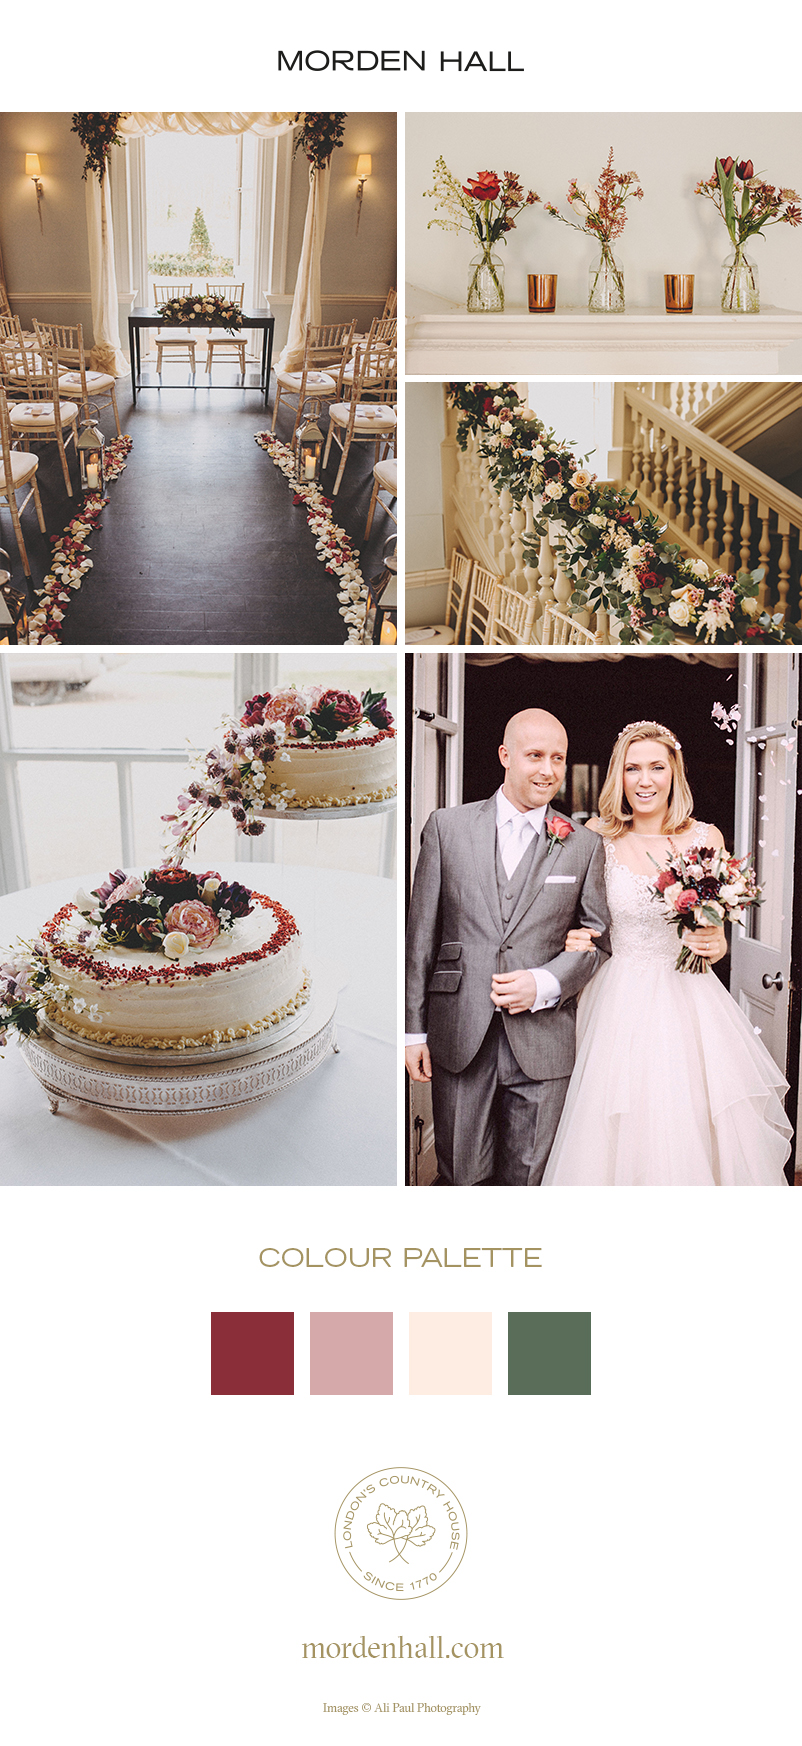 Marette and Paul's real life wedding at Morden Hall